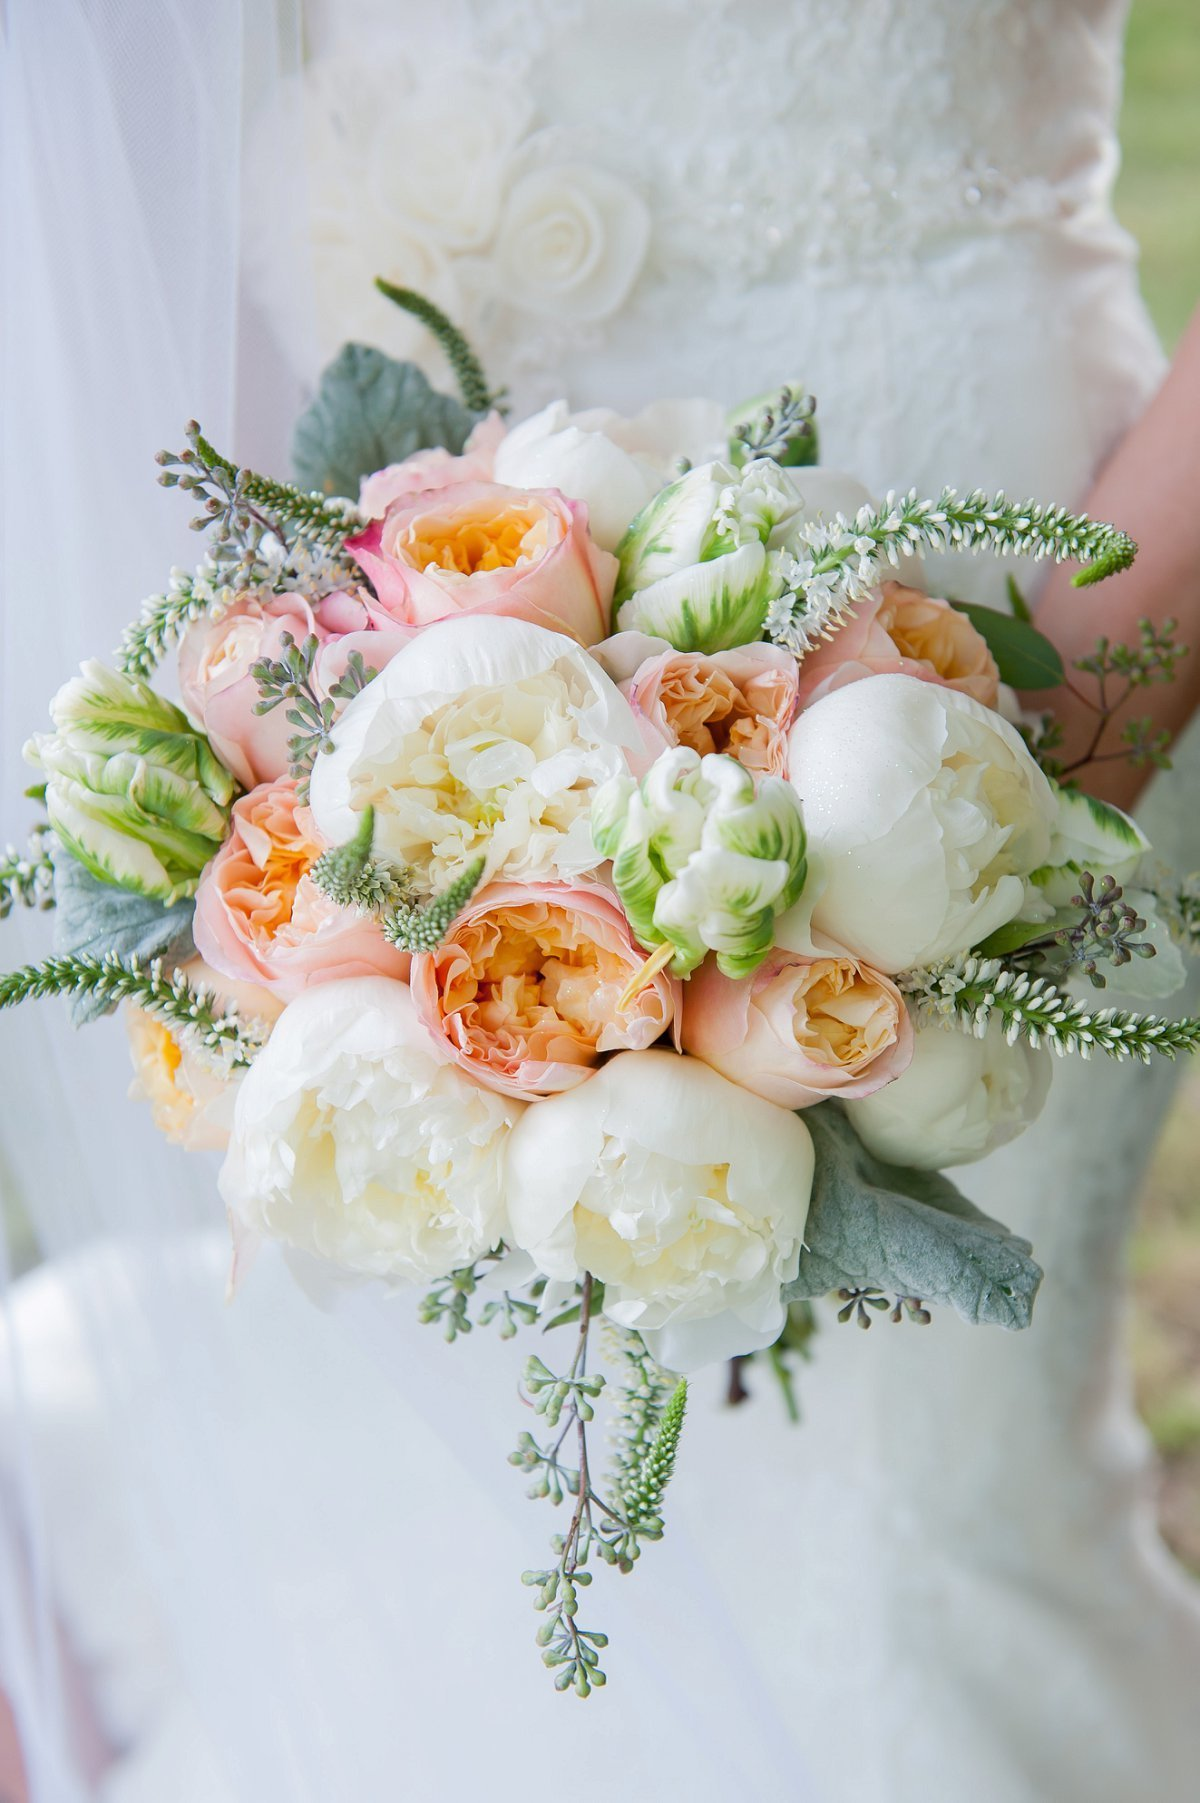 Wedding florals photographed by KrisKandel fargo photographer